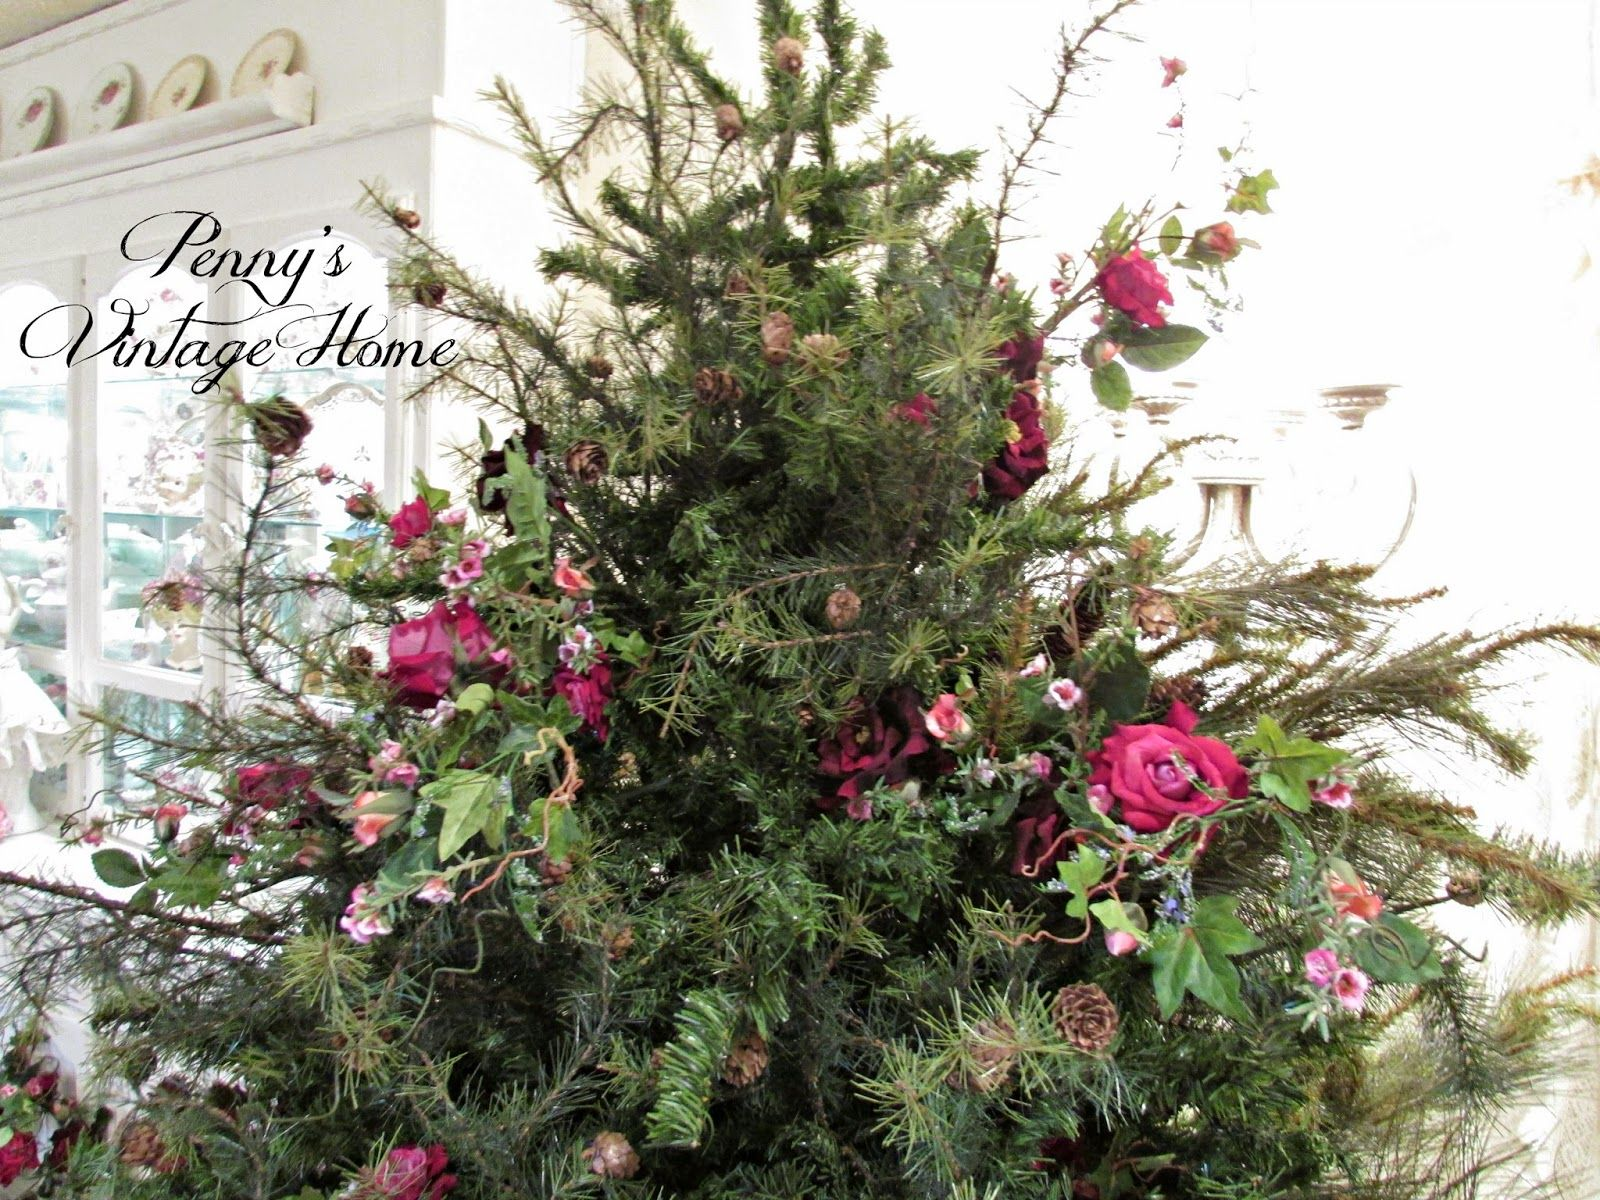 Penny's Vintage Home: How to Make a Short, Fat Christmas Tree | Christmas tree